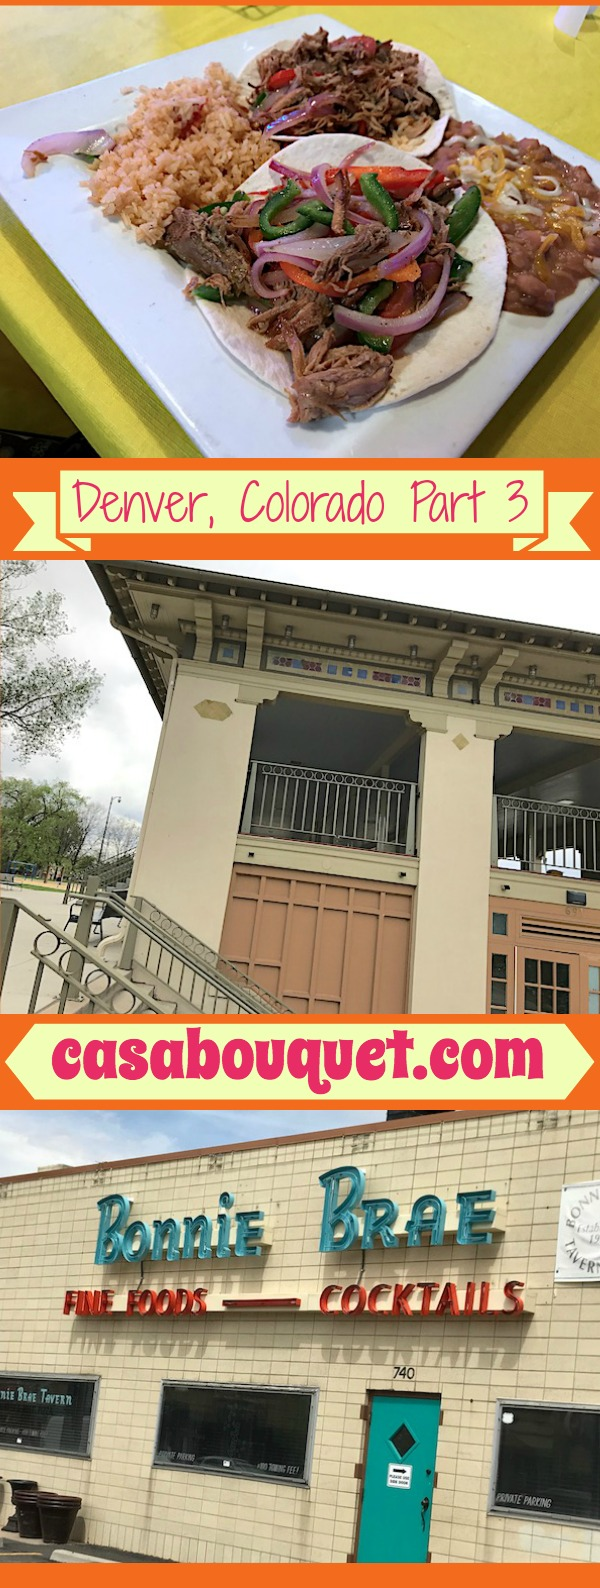 Denver Colorado has Washington Park and Cherry Creek shopping area south of downtown. Classic old-school restaurants and interesting architecture.